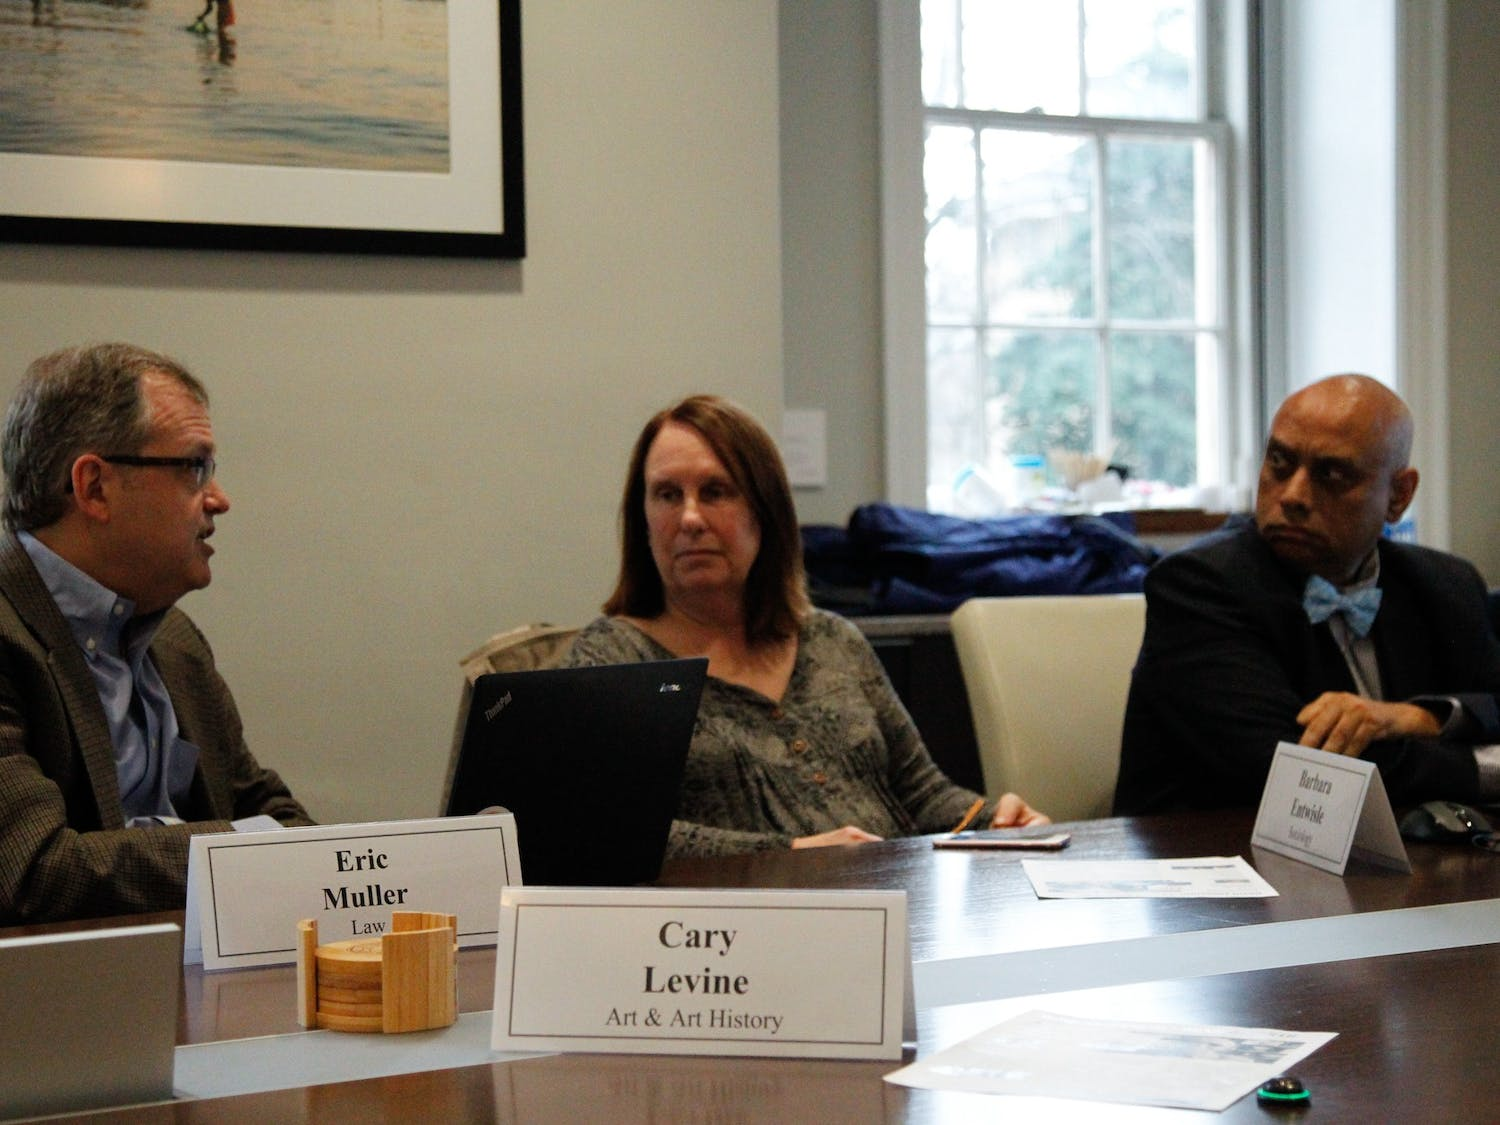 (From left) Eric Muller, Barbara Entwisle, and Deb Aikat discuss topics in the Faculty Executive Committee Meeting on Monday, Feb. 24, 2020 in the South Building. The committee received a Provost update, discussed Public Records Discussion, met the New Senior Administrator George Battle, and had a Campus Safety Commission Update.